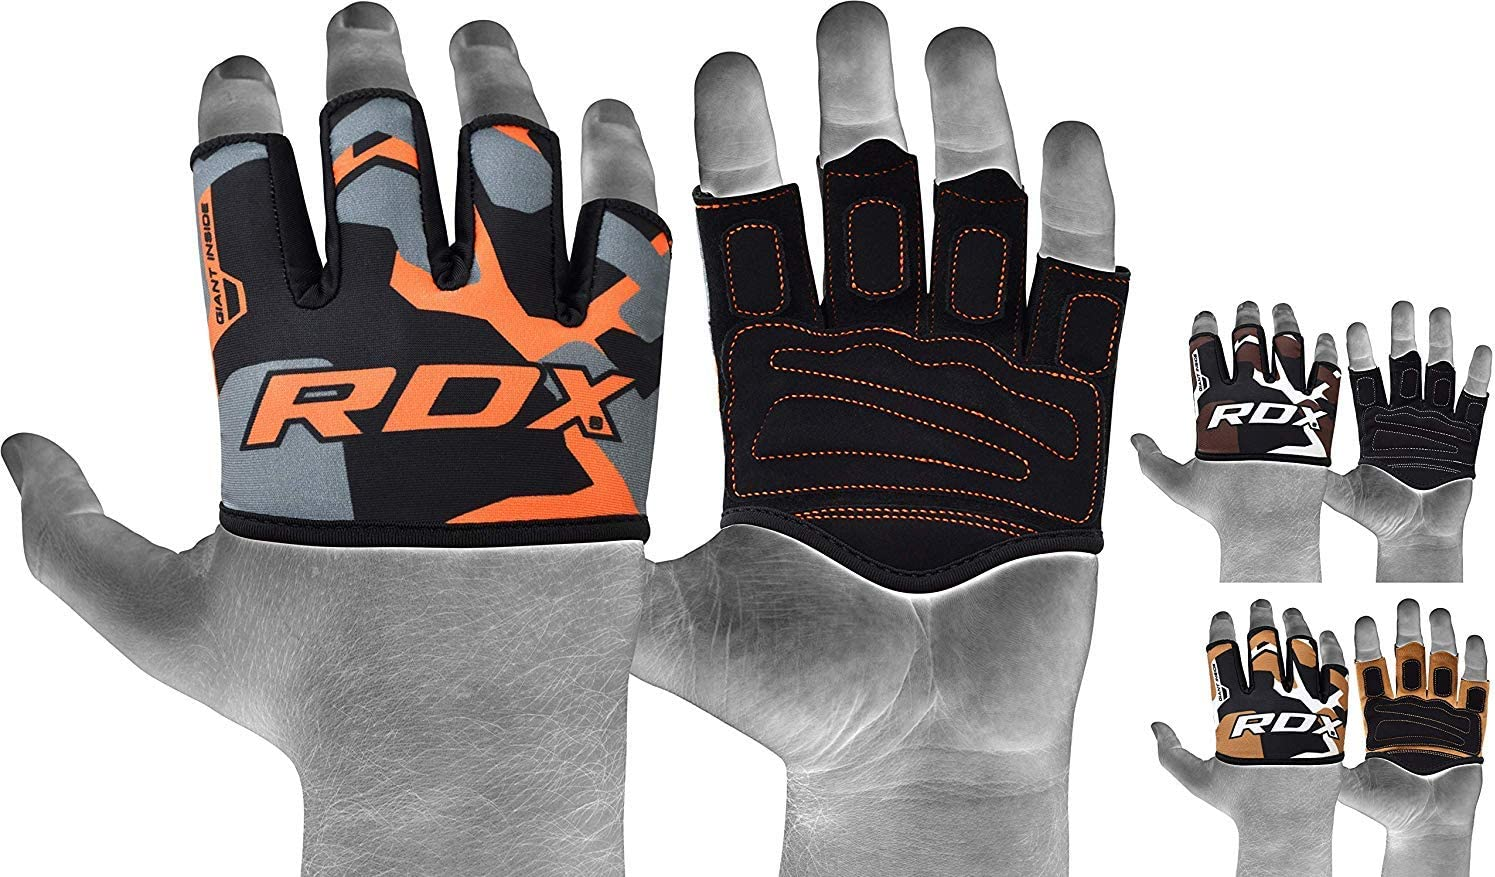 RDX Weight Lifting Gym Grips, Great for Strength Training, Powerlifting, Bodybuilding, Gymnastics, Workout and Exercise